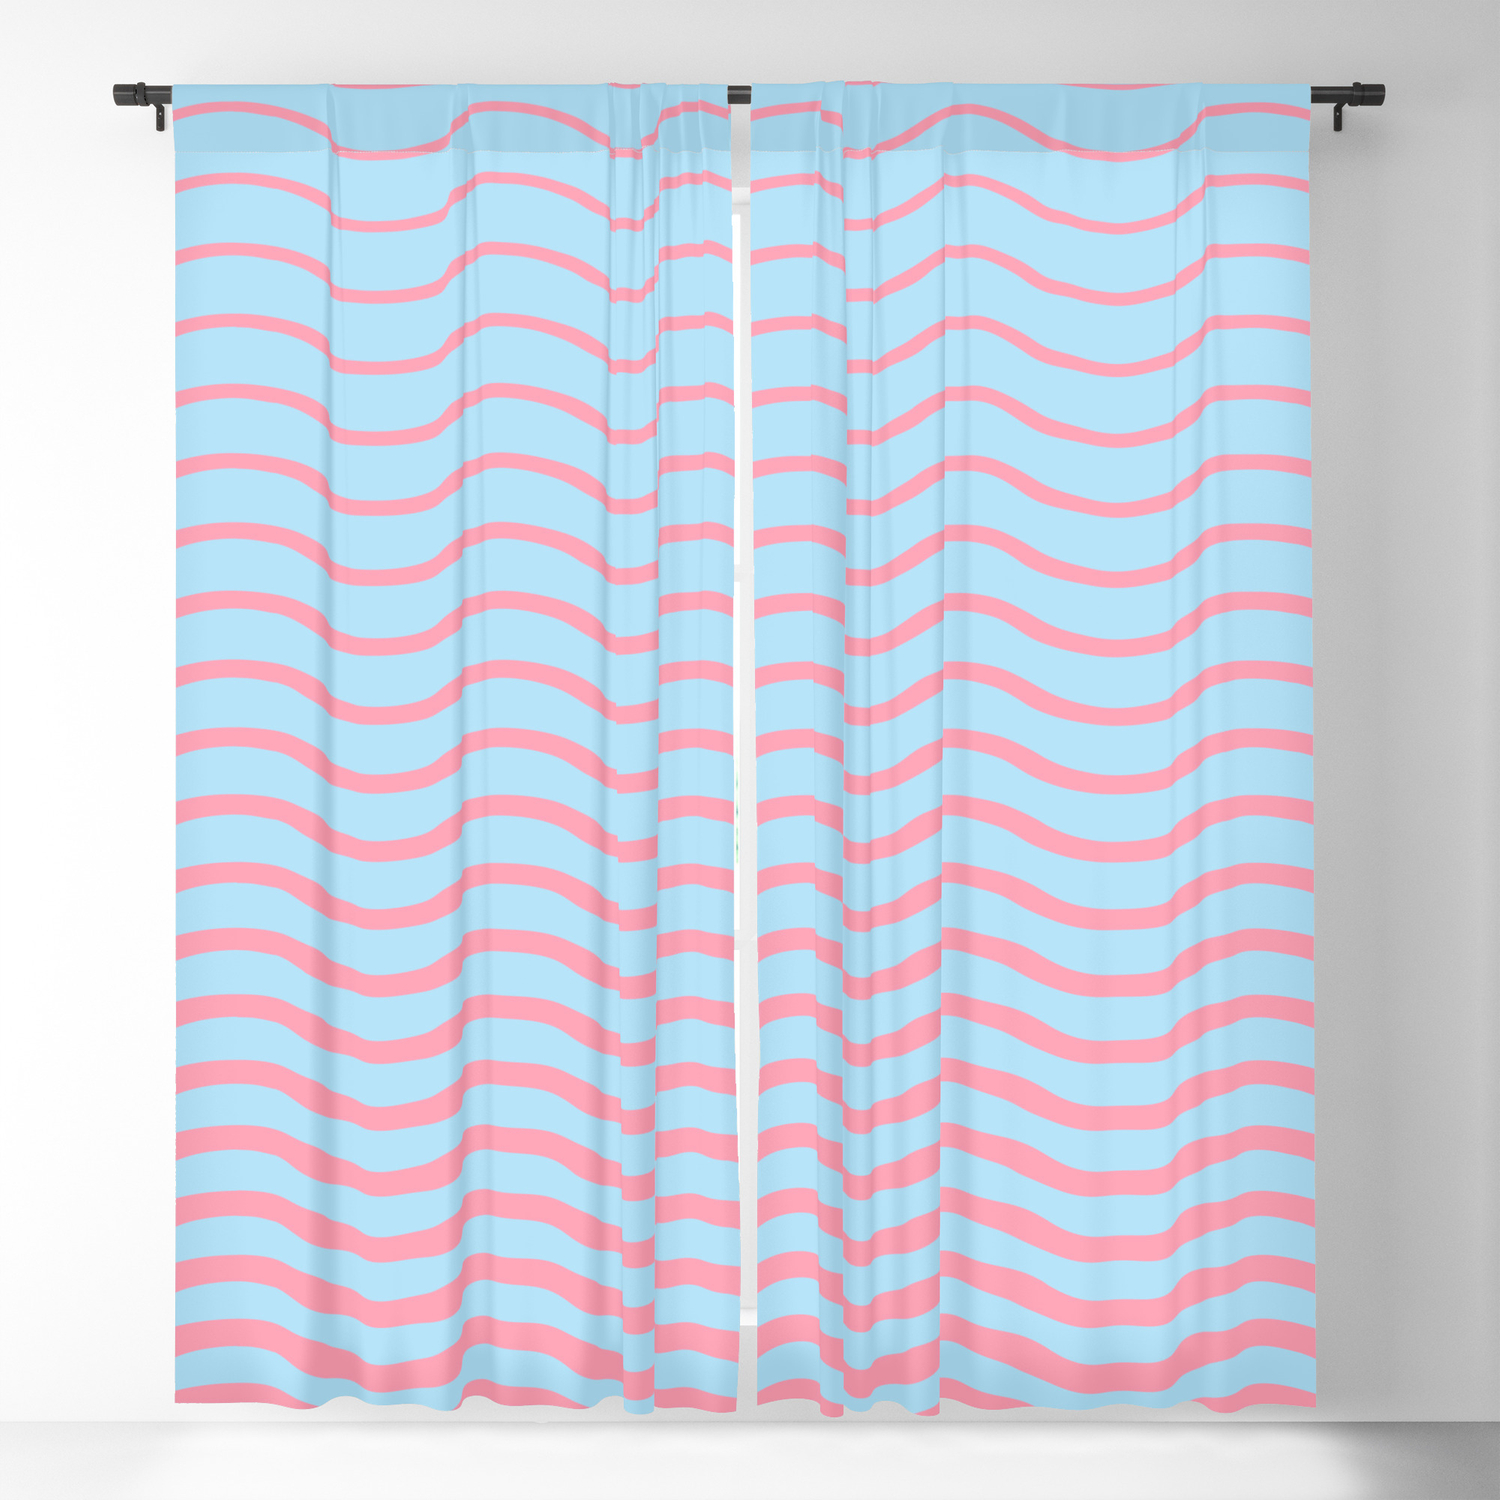 Waves Pattern Geometric Abstract Pink And Light Blue Blackout Curtain By Alma Design Society6